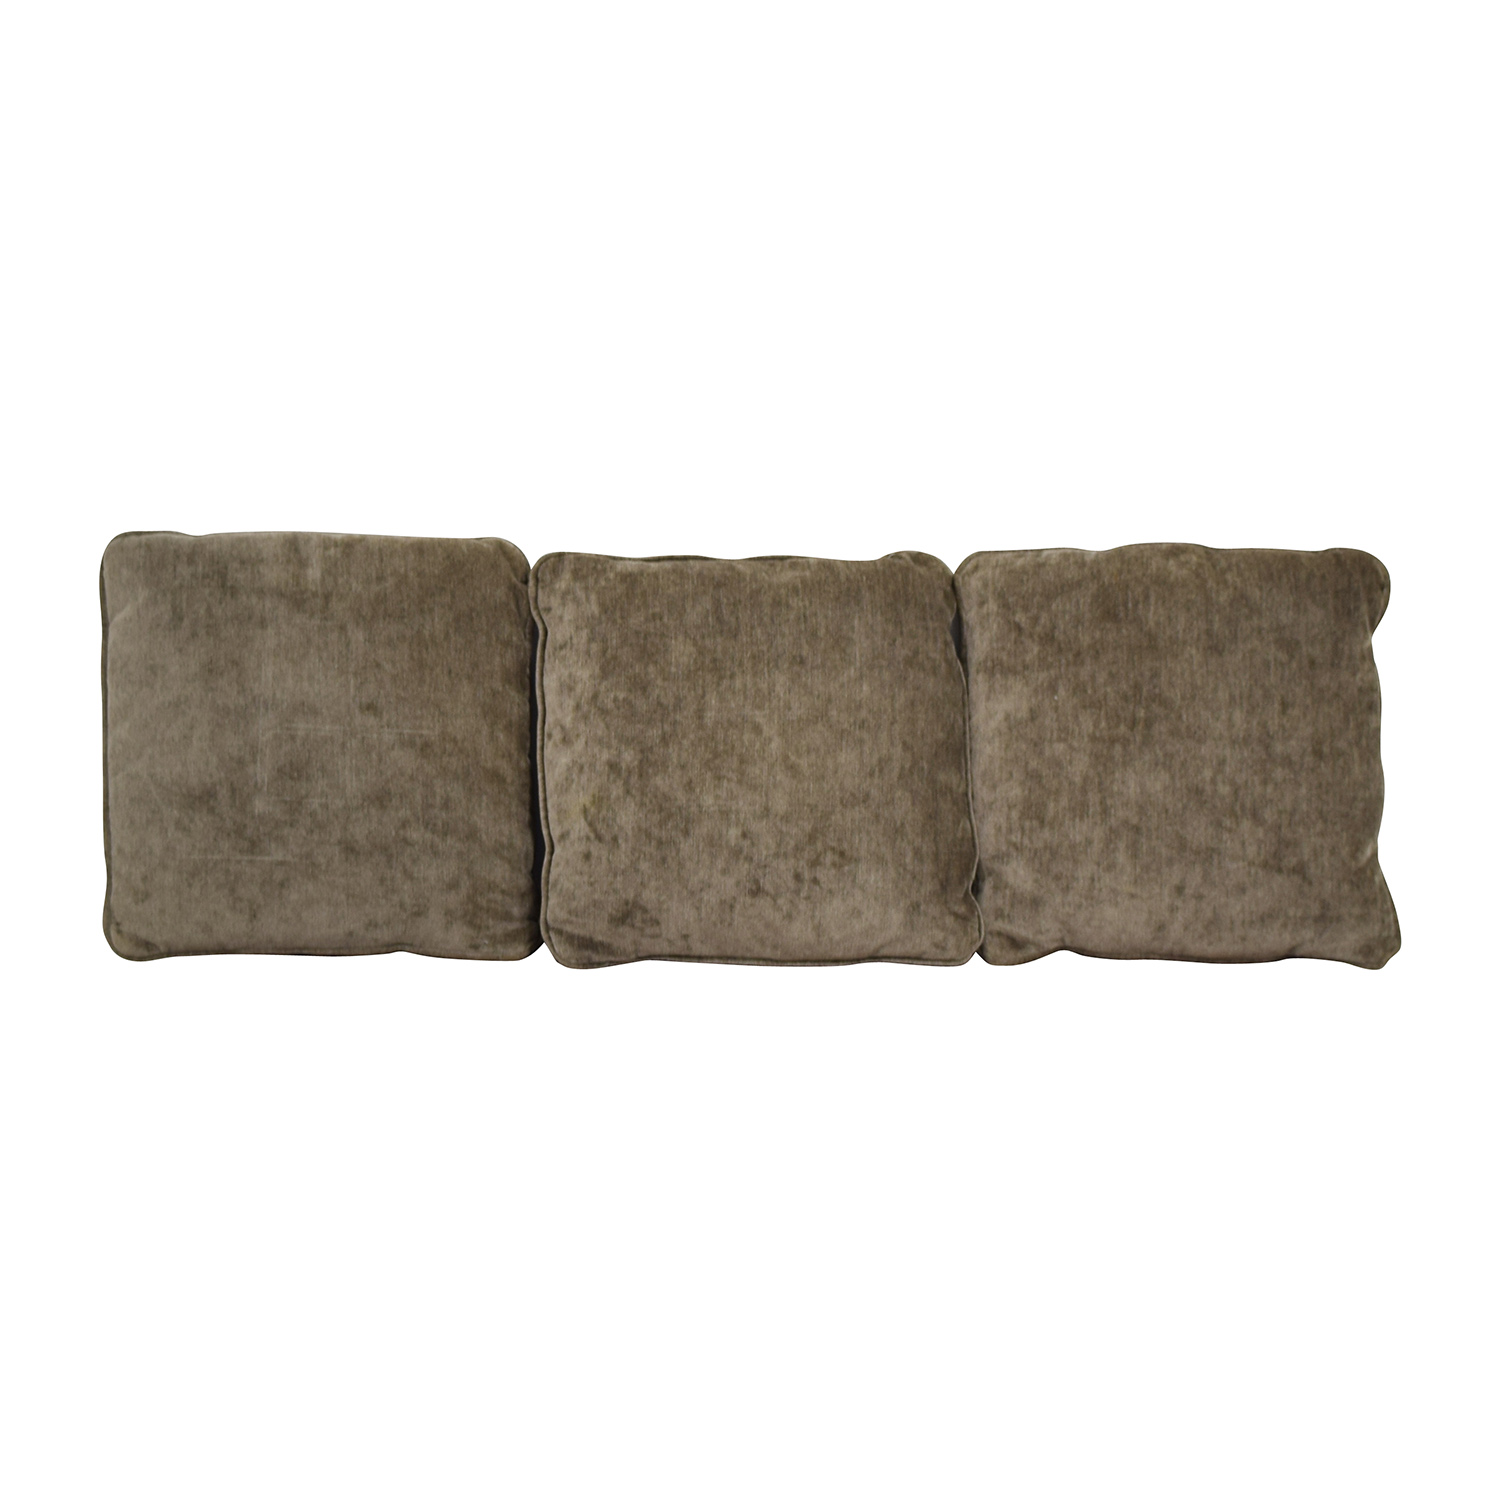 Brown Square Toss Pillows / Decorative Accents